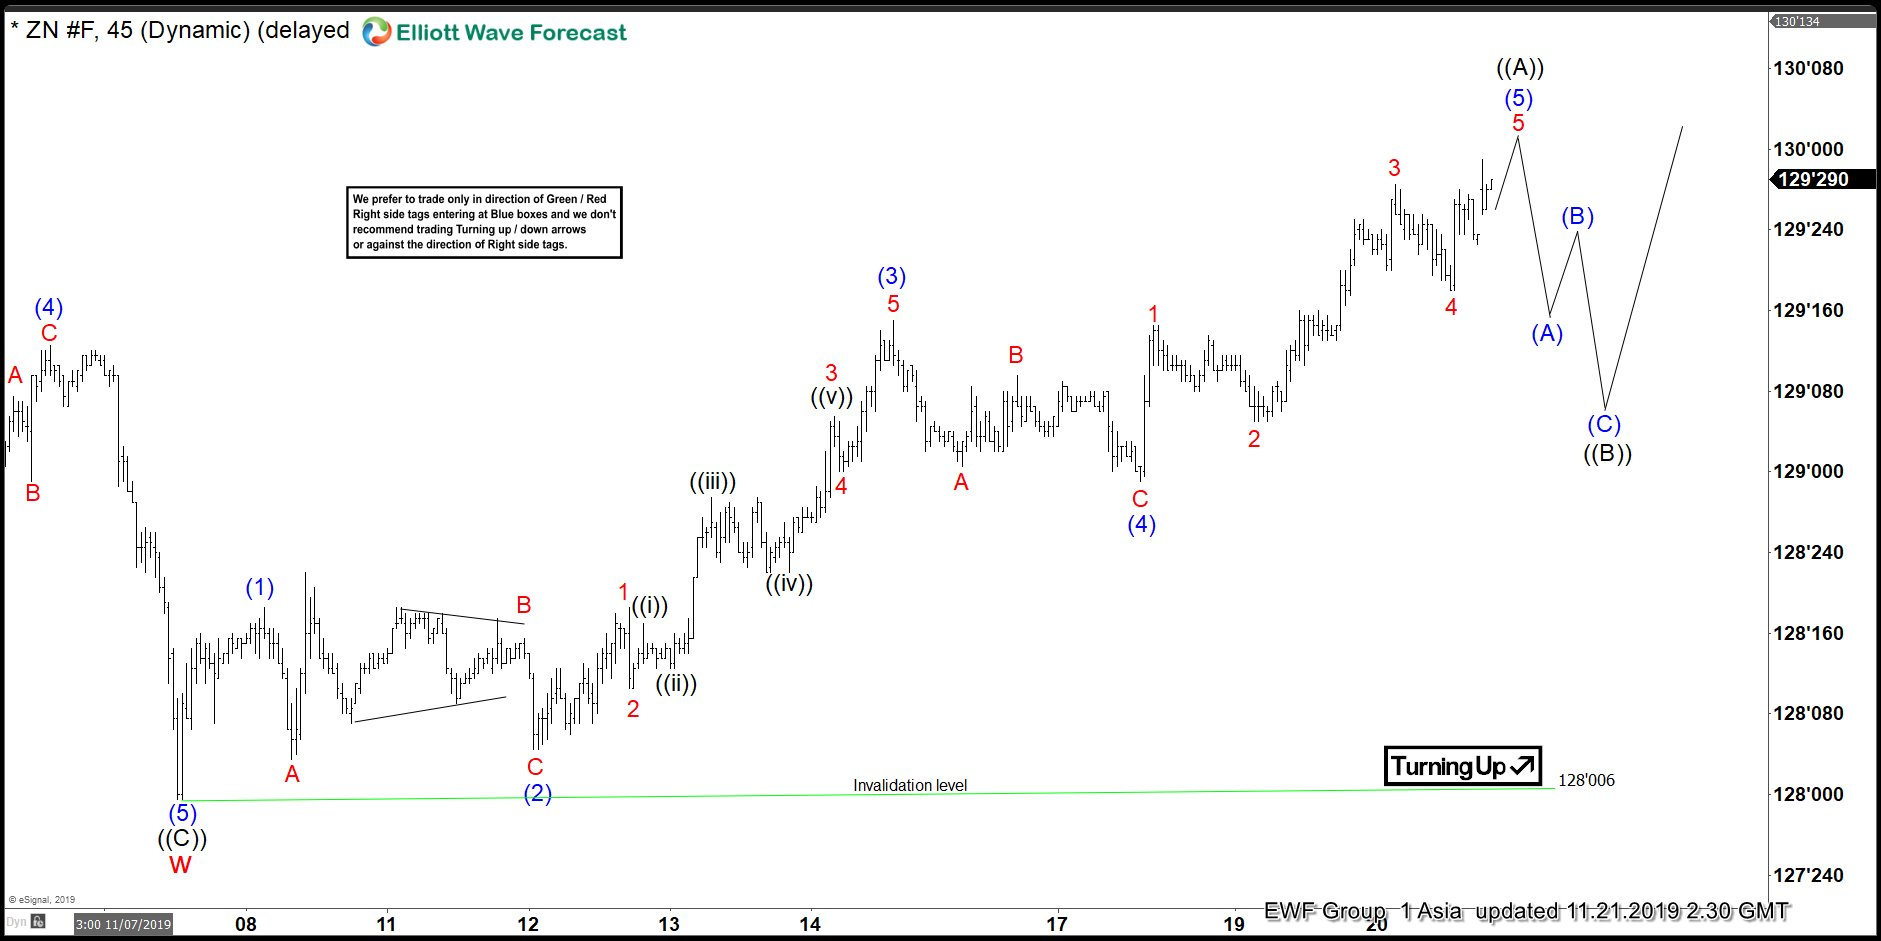 Elliott Wave View: Impulsive Rally in 10 Year Notes (ZN_F)